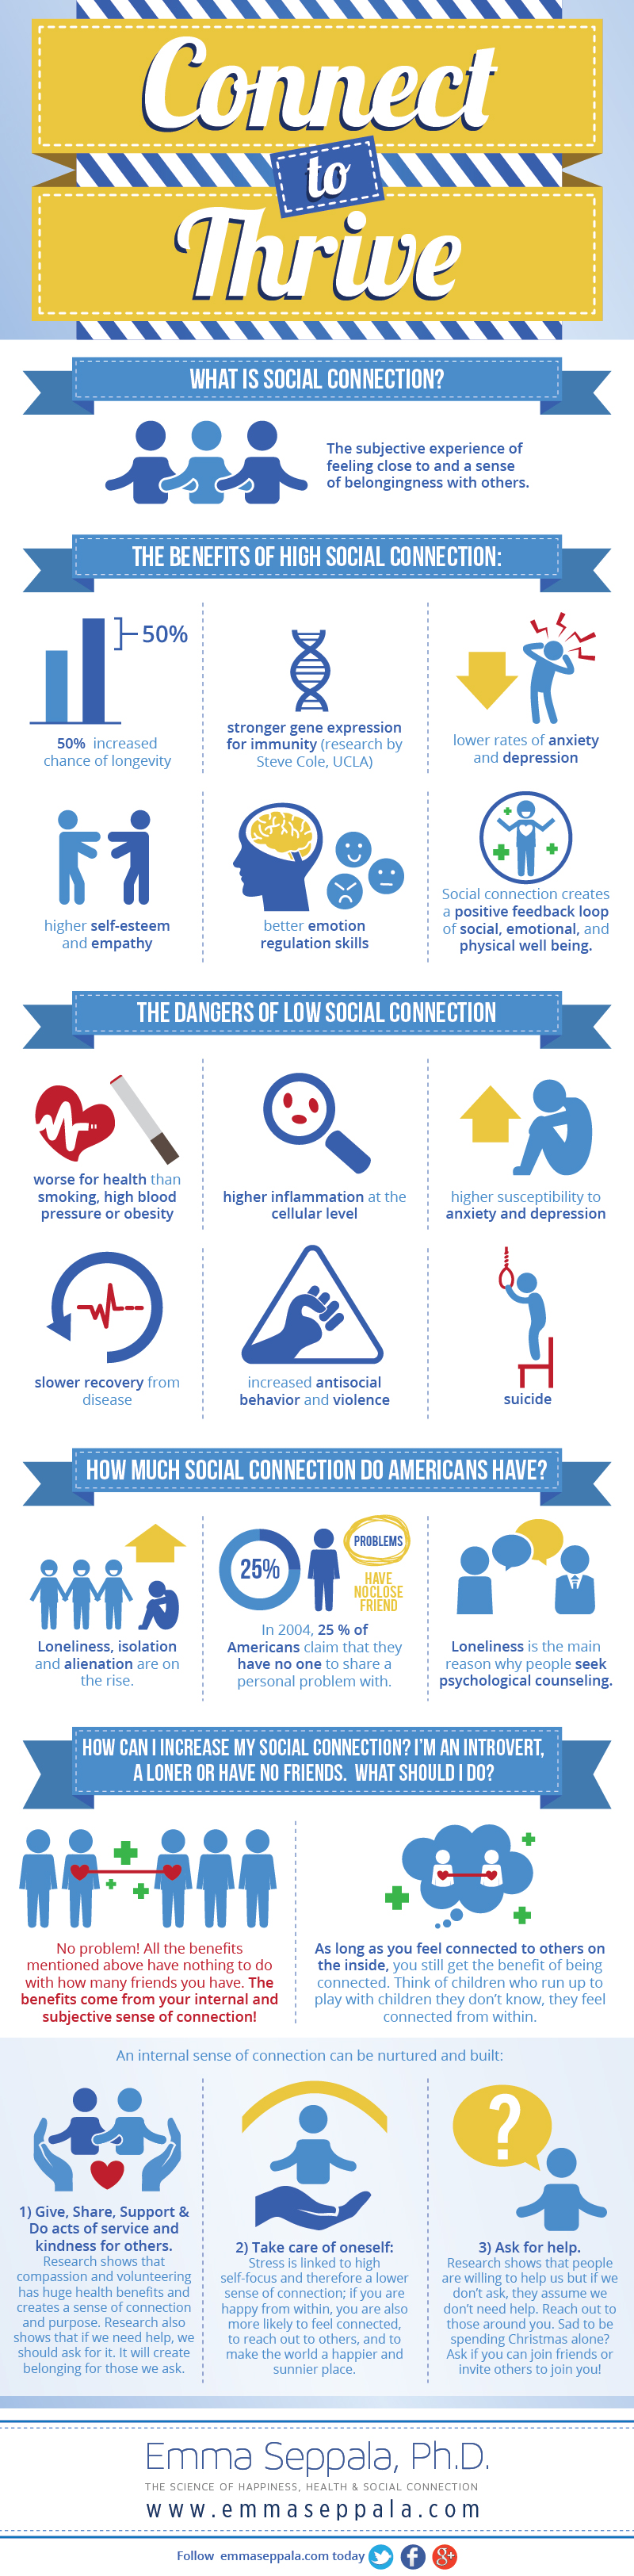 Benefits of Social Connections